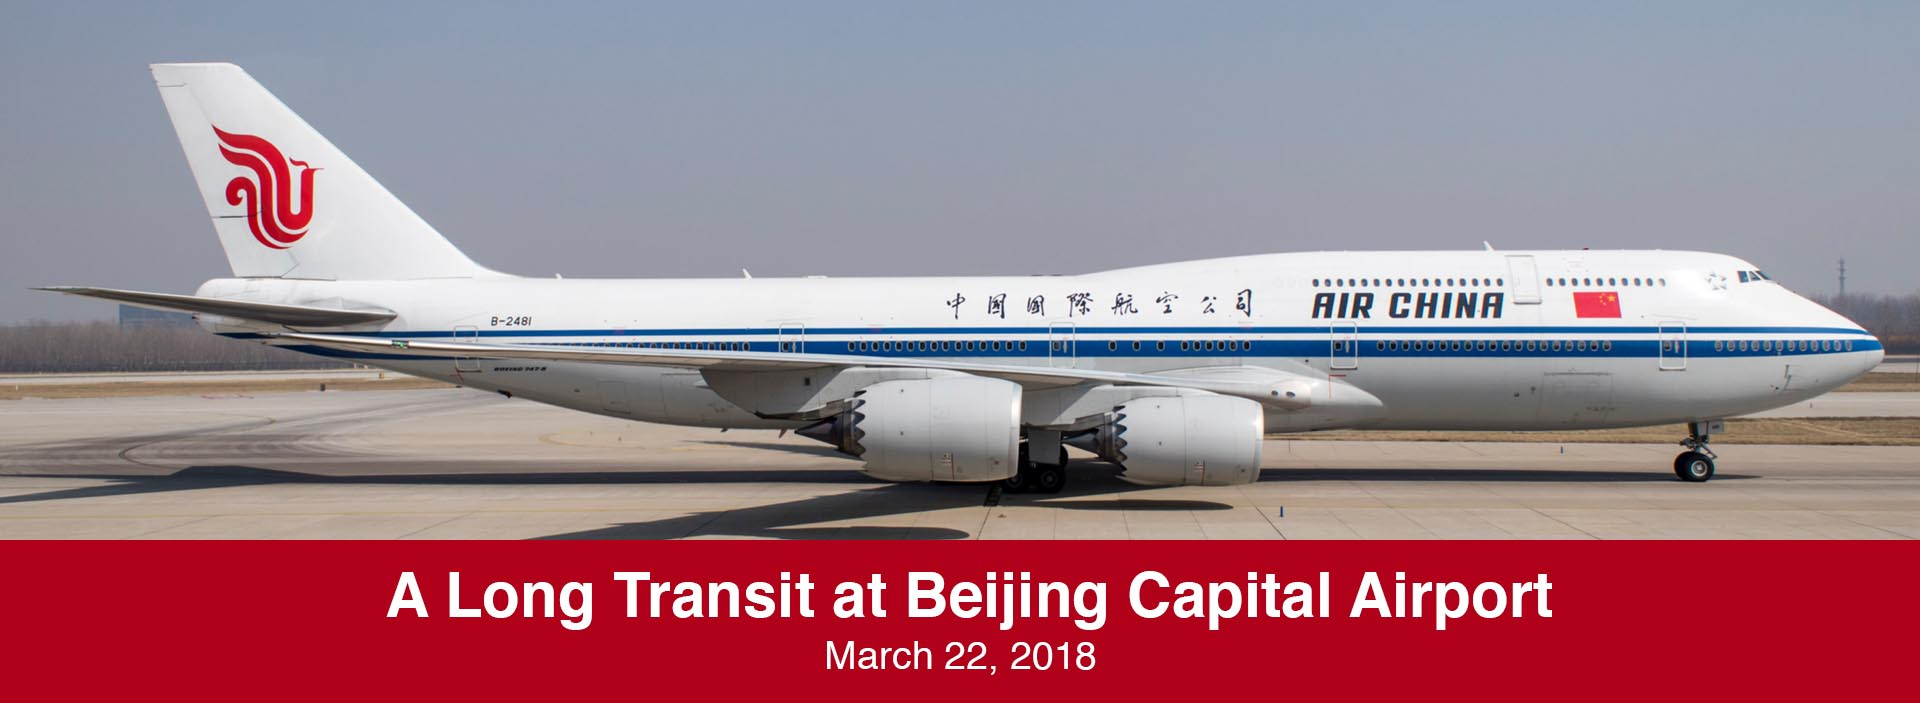 Spotting Report: A Long But Productive Transit at Beijing Capital Airport